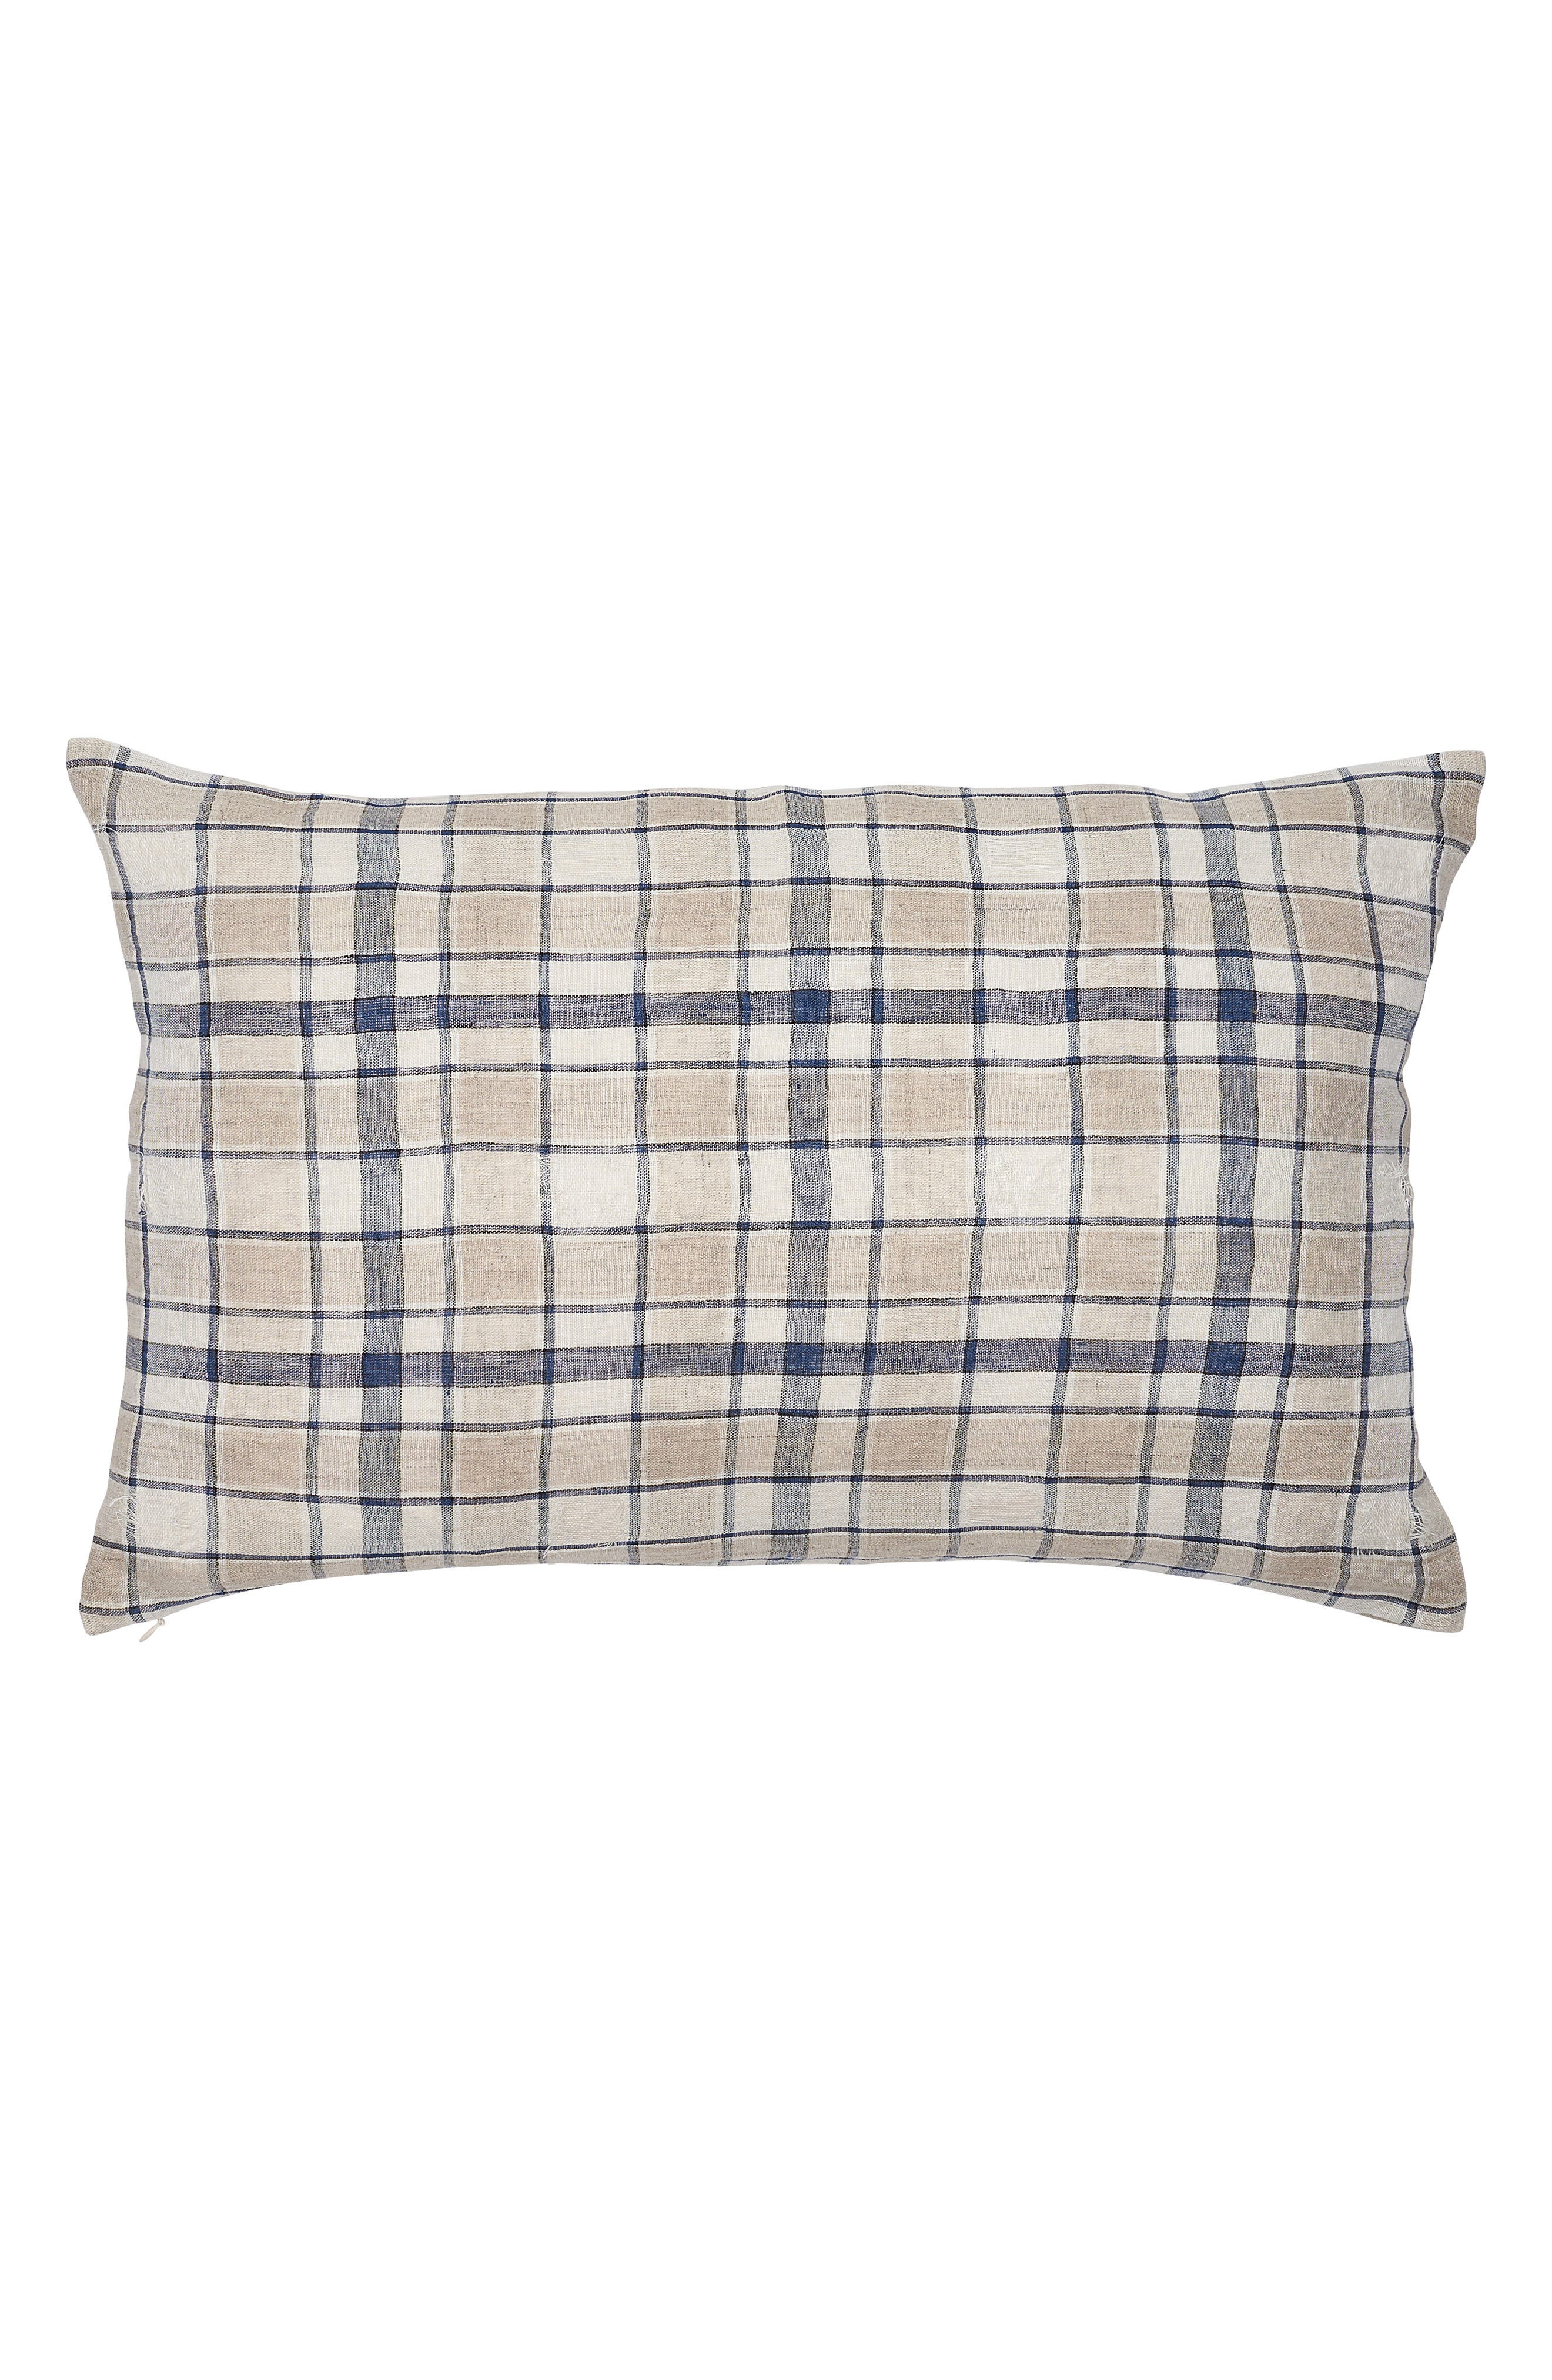 EADIE LIFESTYLE Caddy Scatter Accent Pillow, Main, color, NAVY MULTI